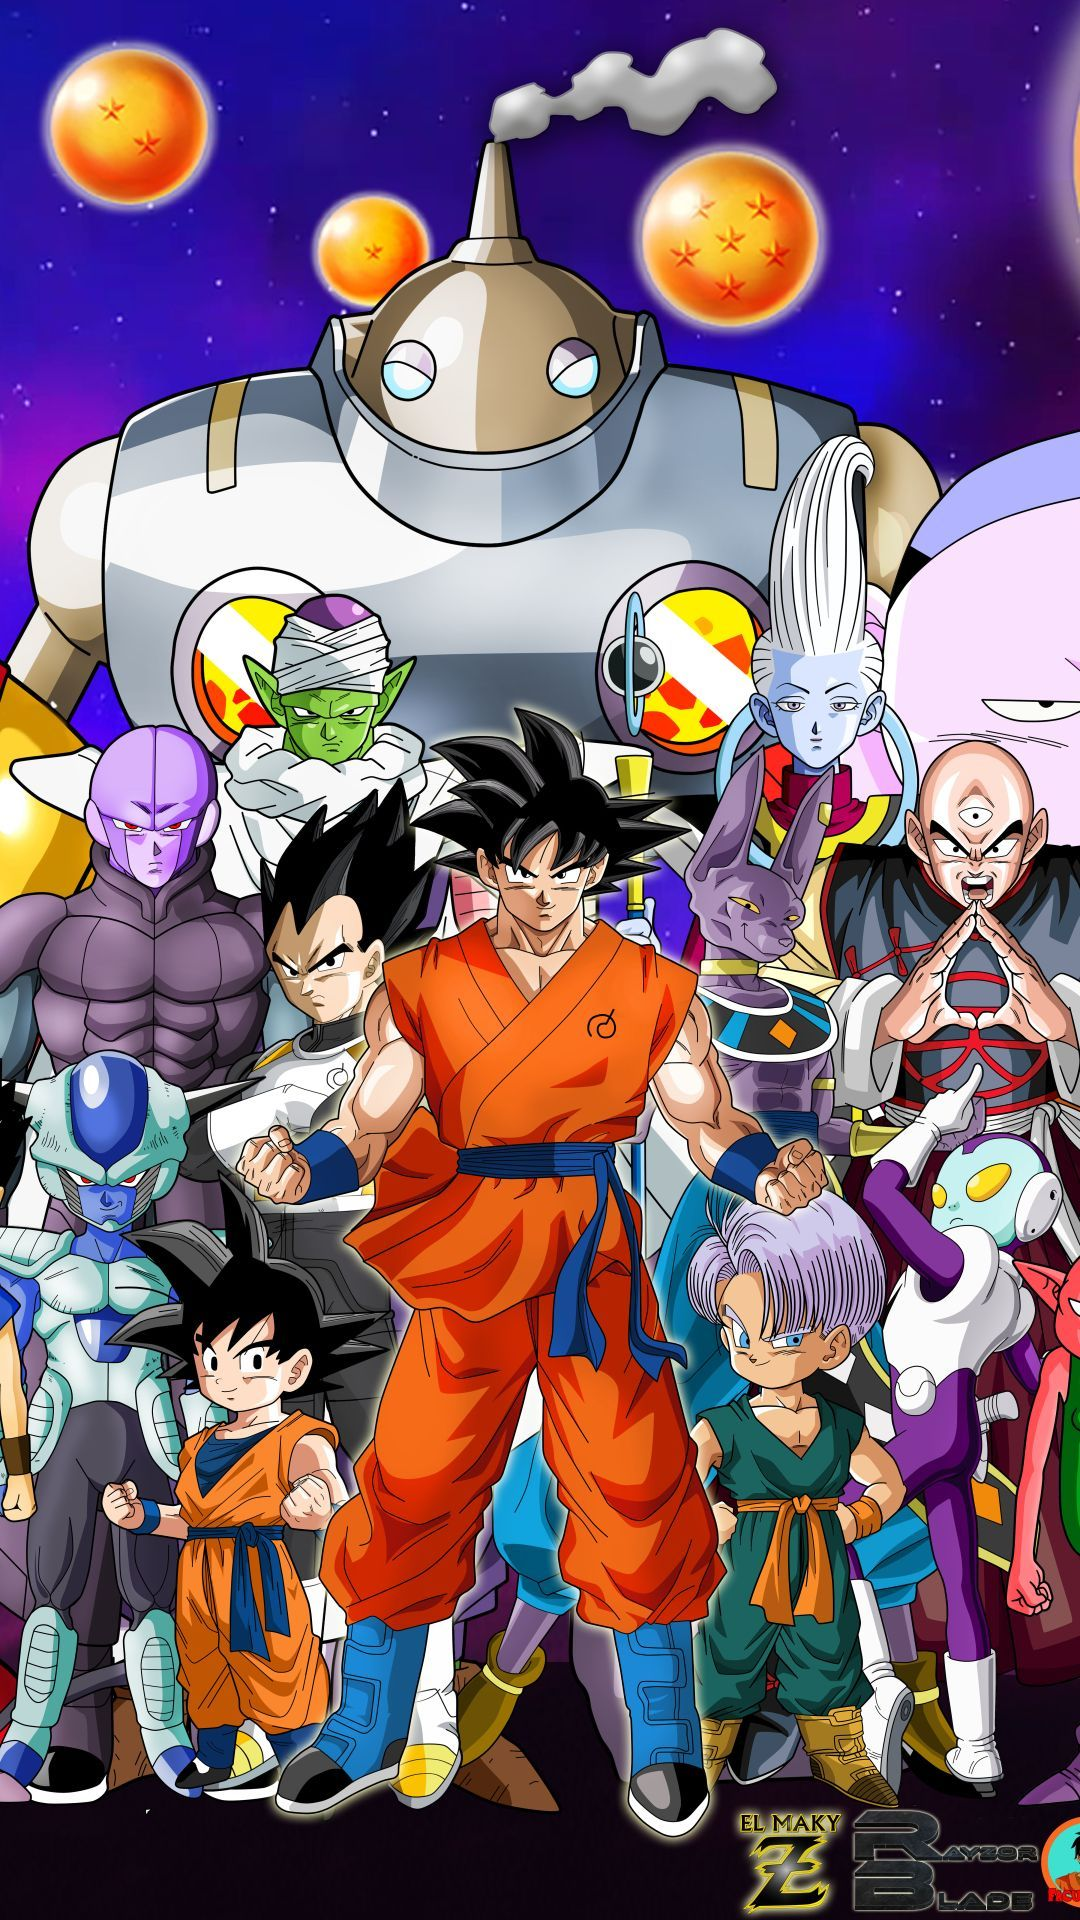 Dragon Ball Z Wallpaper Hd » Hupages » Download Iphone